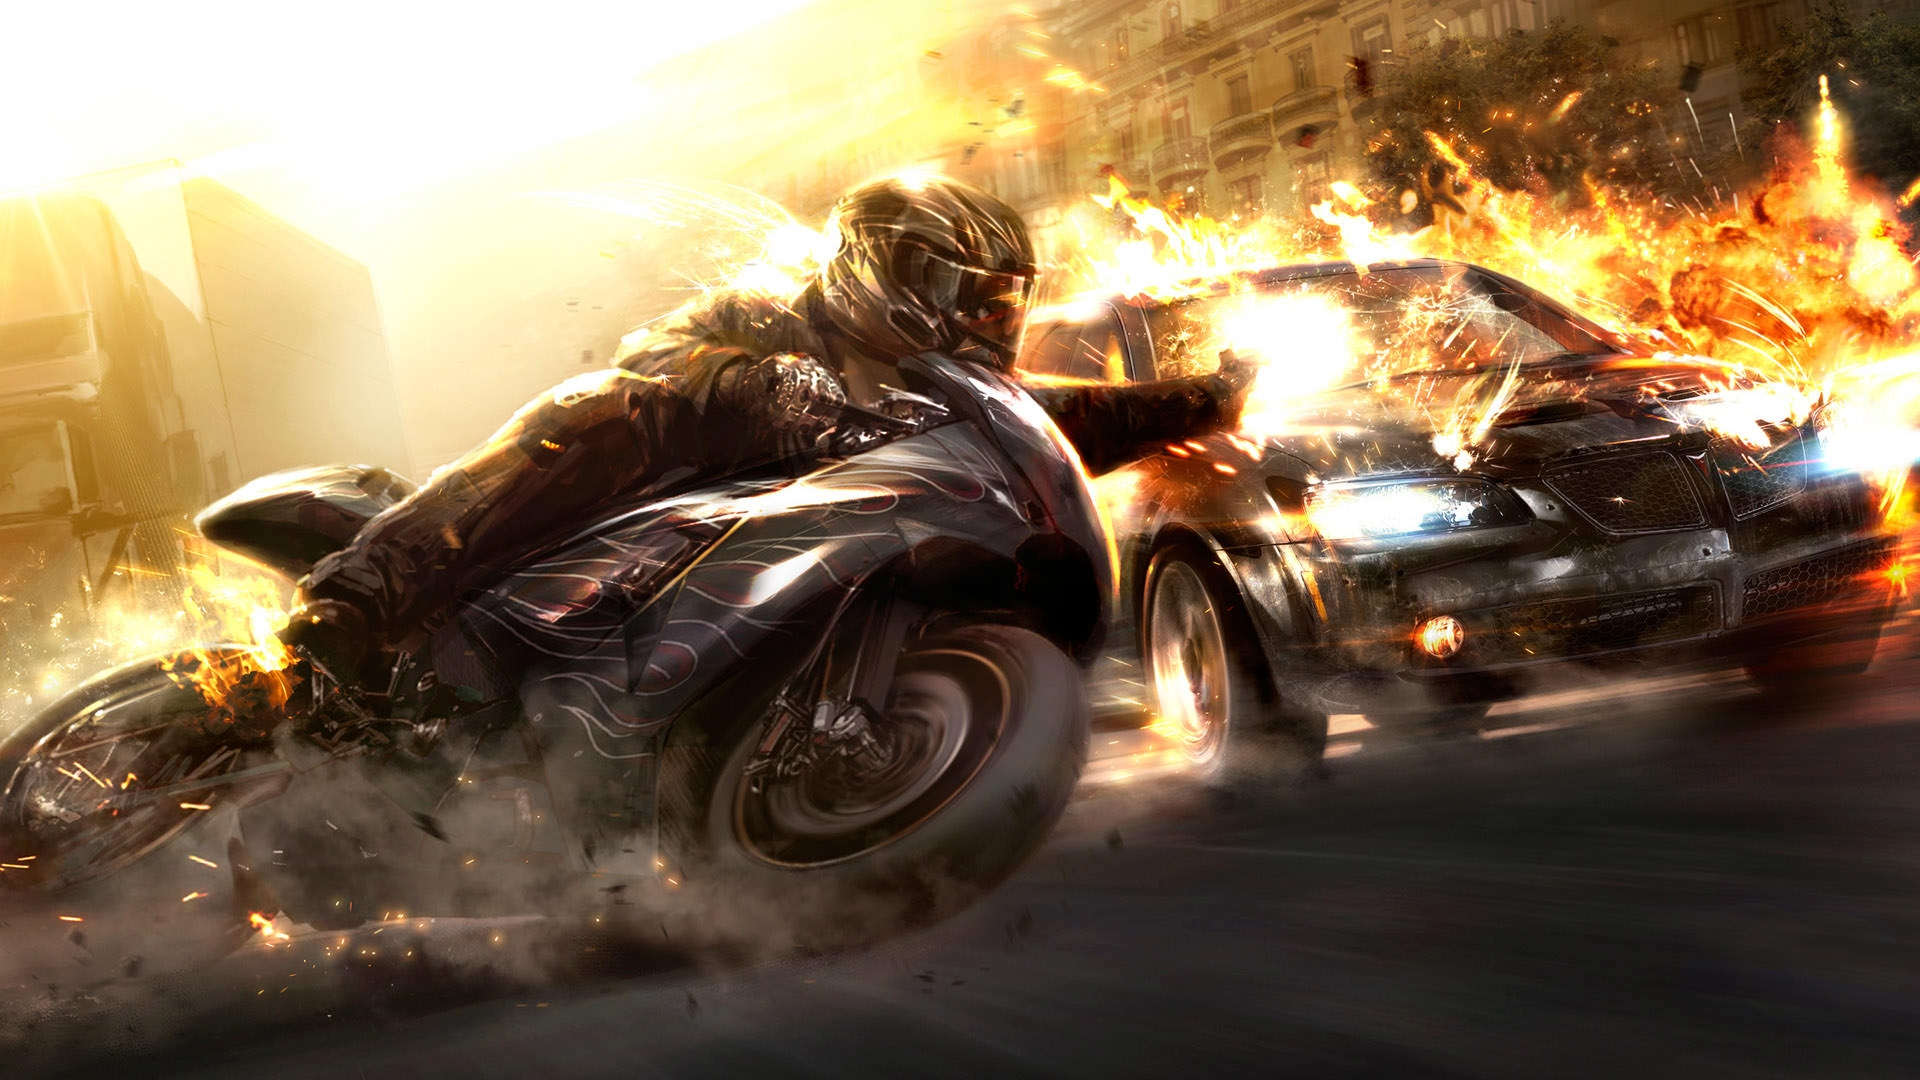 car-slide-game-hd-images-wallpapers-widescreen